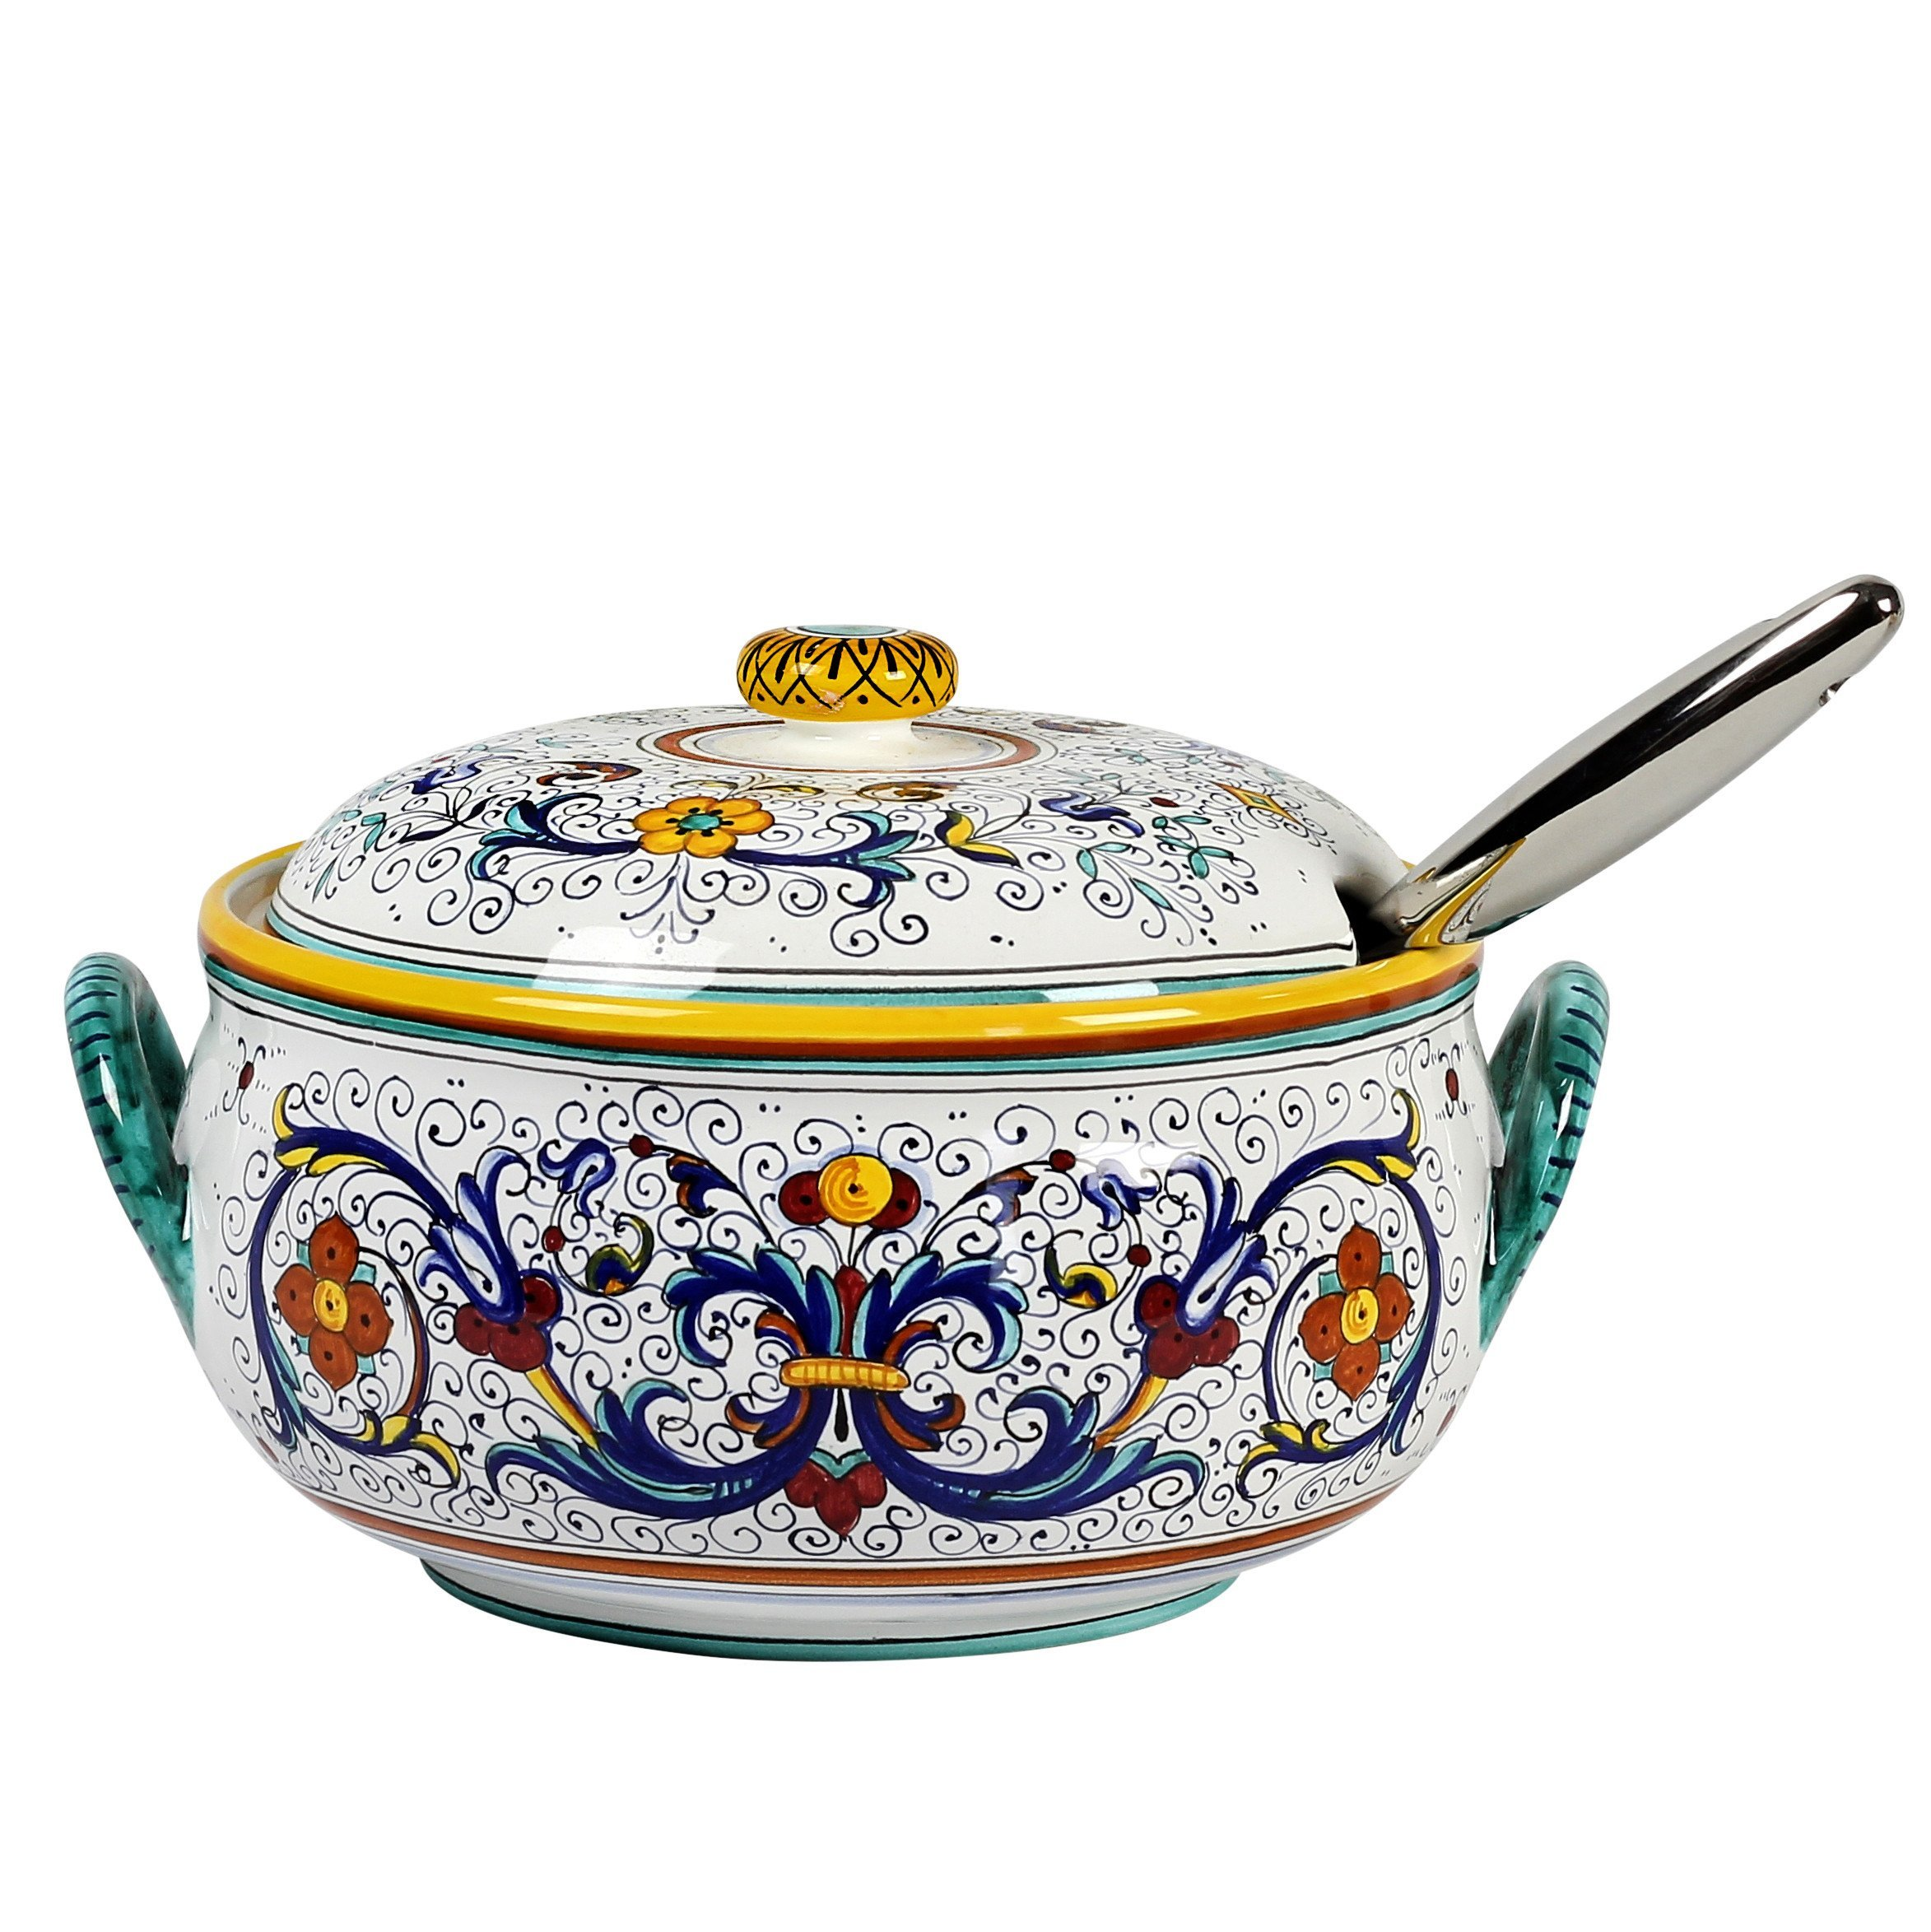 RICCO DERUTA: Round Soup Tureen with Stainless Steel Laddle